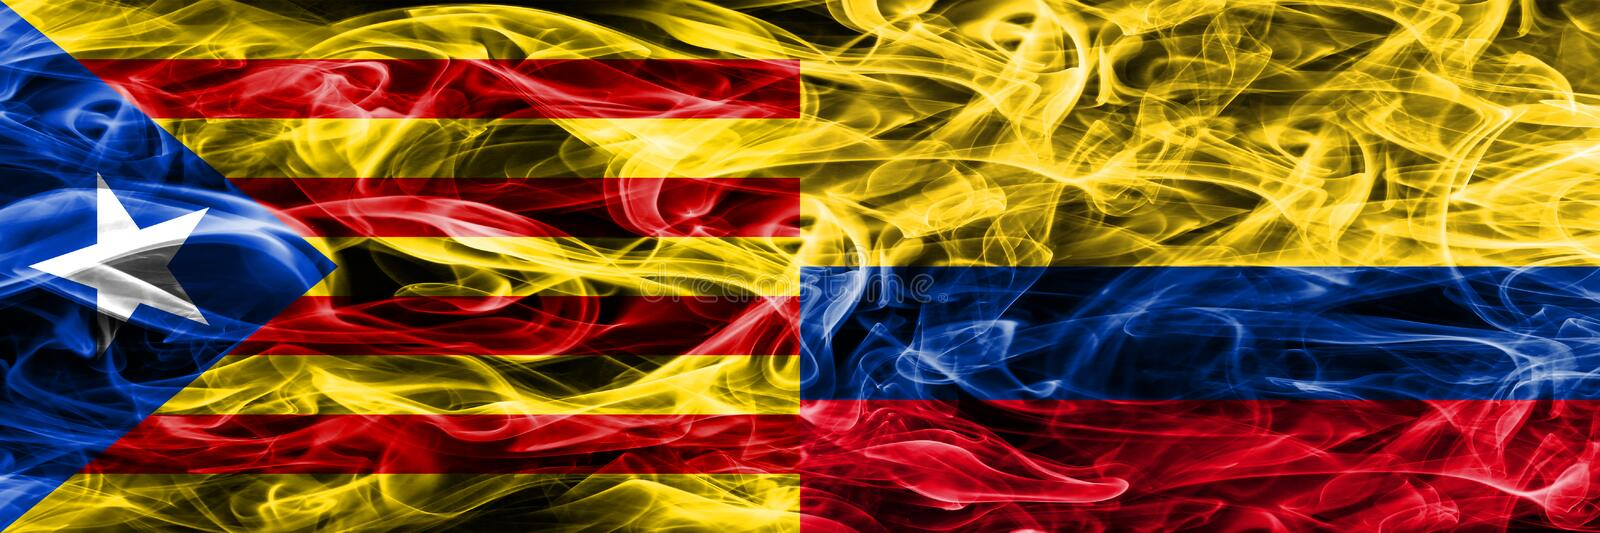 Catalonia vs Colombia copy smoke flags placed side by side. Thick colored silky smoke flags of Catalan and Colombia copy.  stock illustration